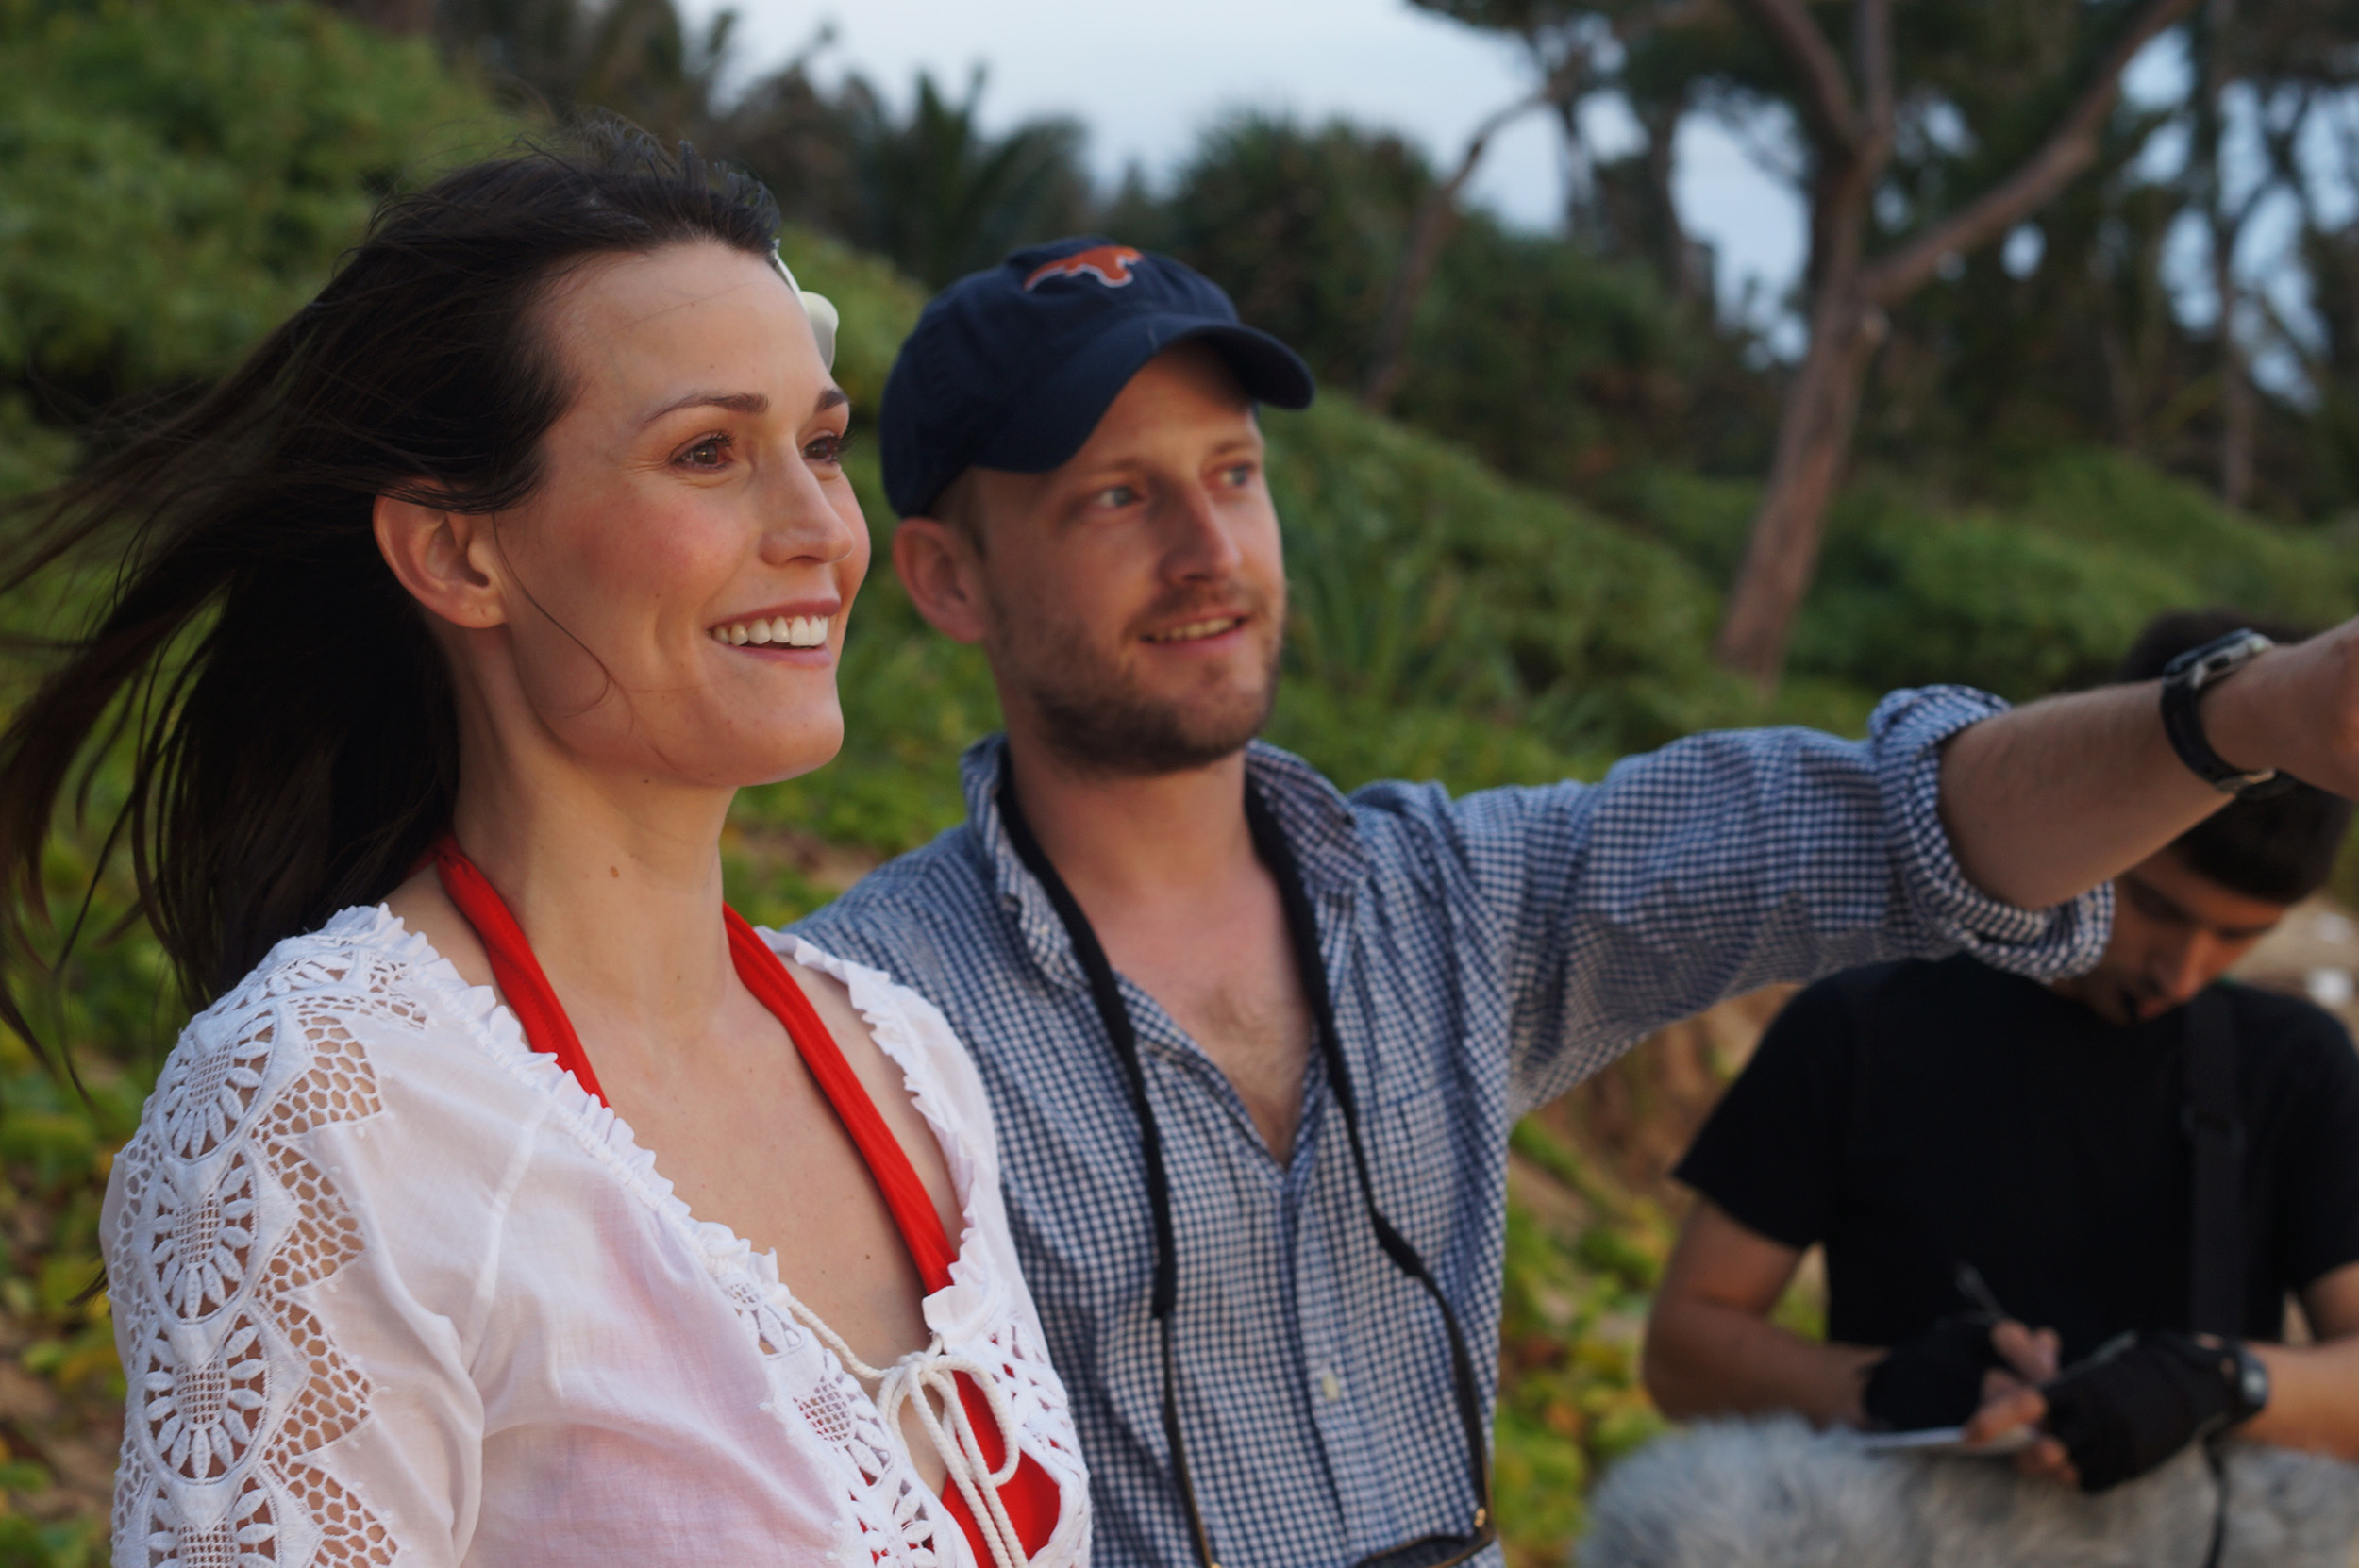 Obligatory photo of the director pointing at something while shooting  Pō  in Hawai'i (the talented Mylinda Royer in the foreground, the talented Rui Silva in the background).